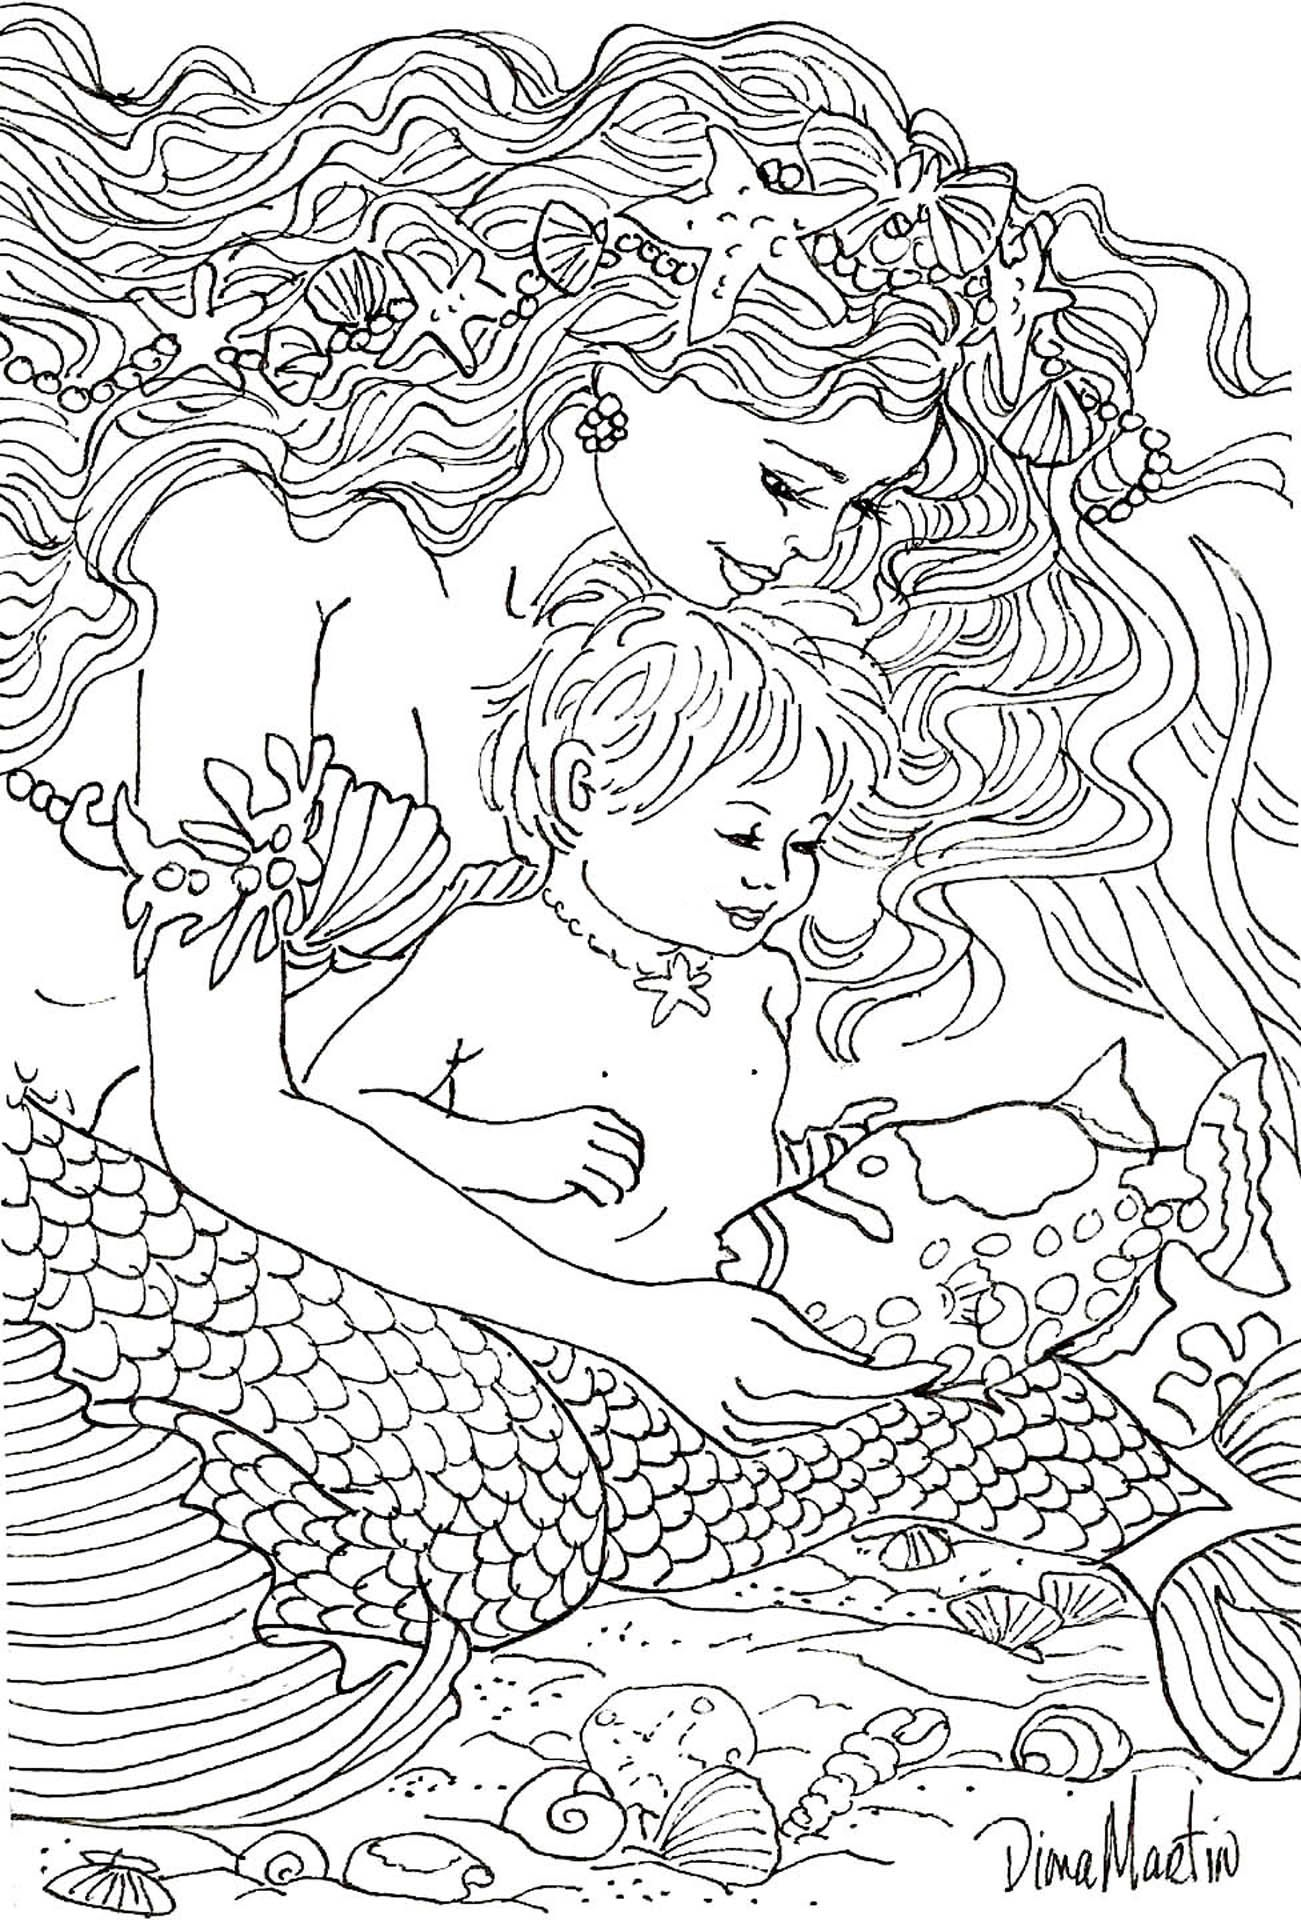 Making New Friends Mermaid Coloring Pages Mermaid Coloring